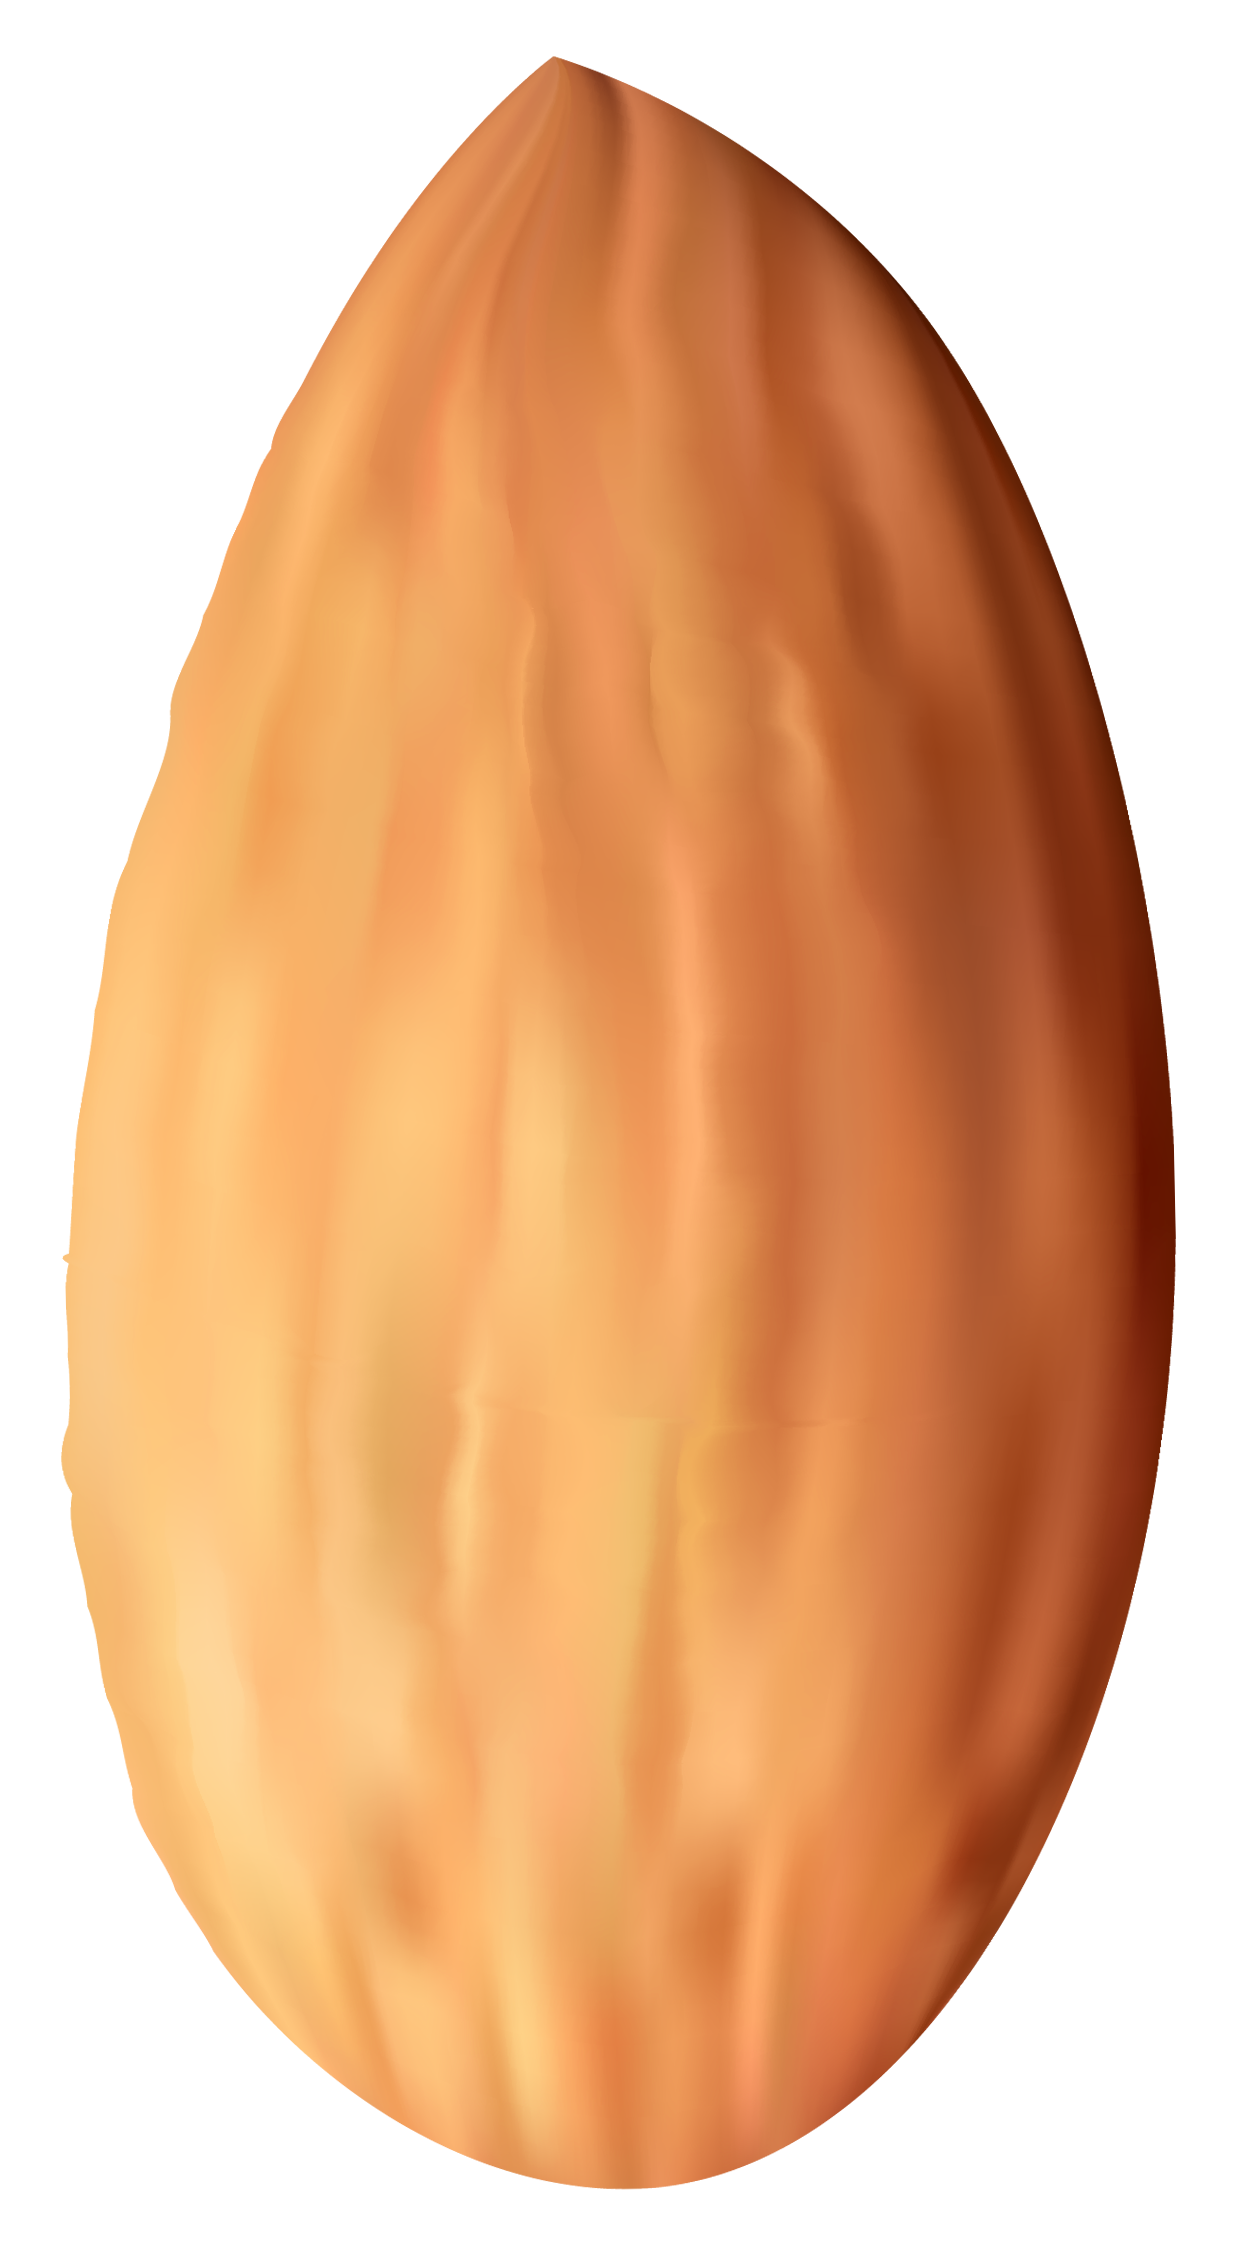 almond nut png clipart best web clipart #30359